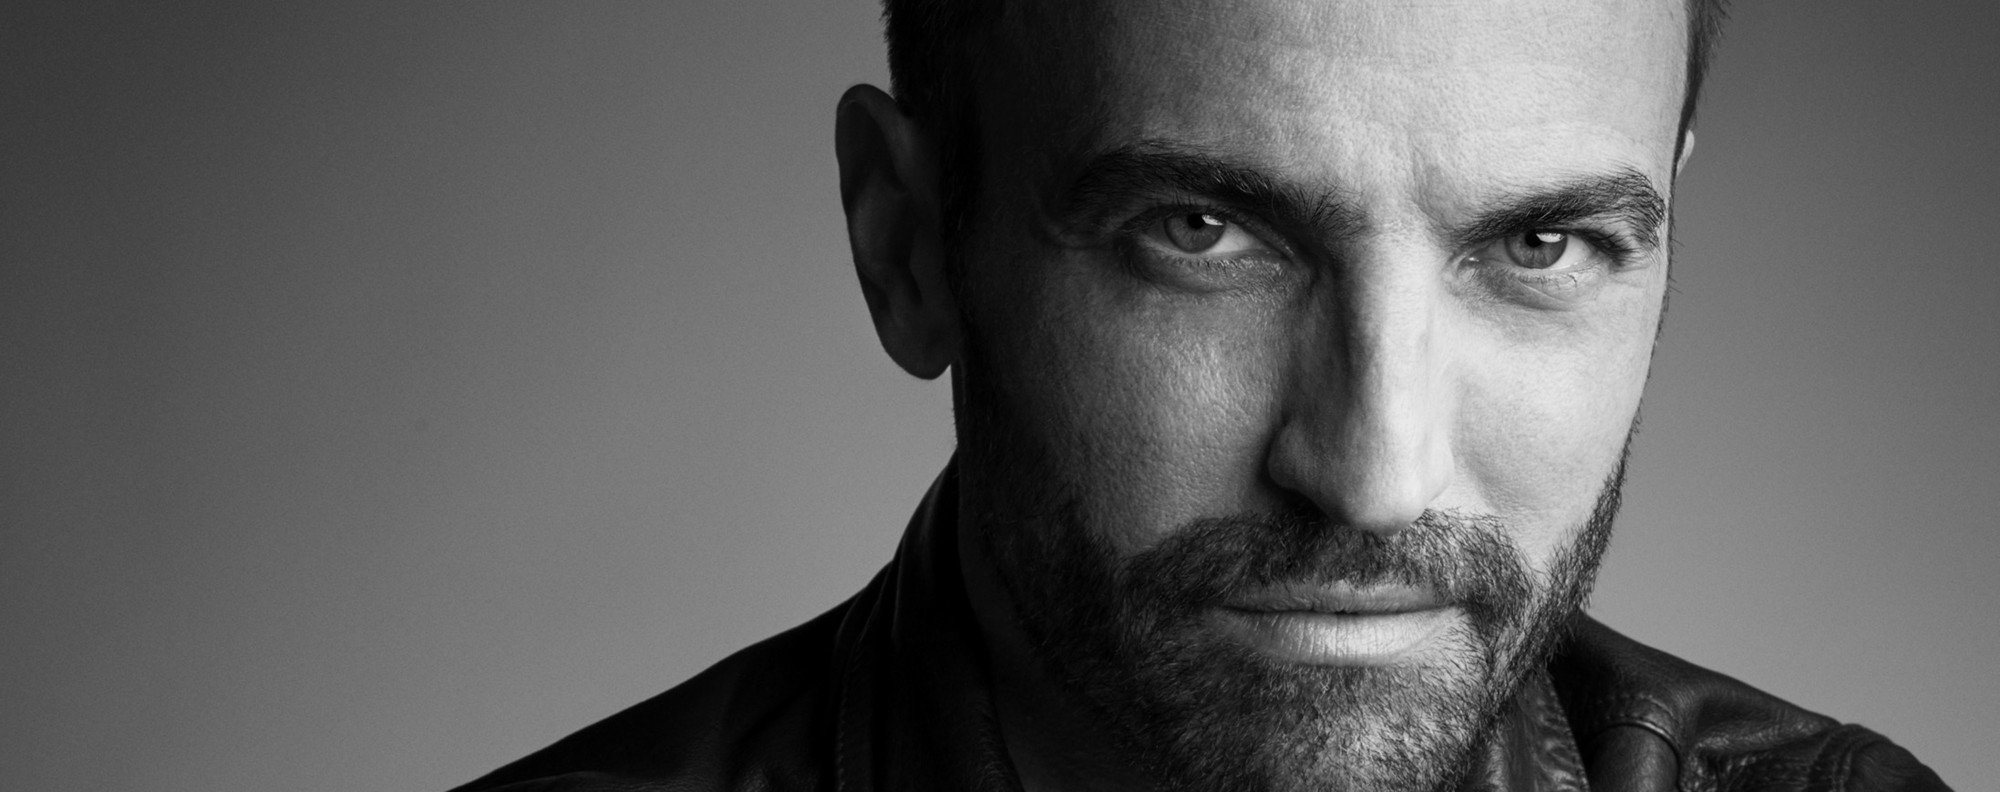 Fashion designer Nicolas Ghesquière says it's pushing the limits of the Louis Vuitton brand that makes him happy.